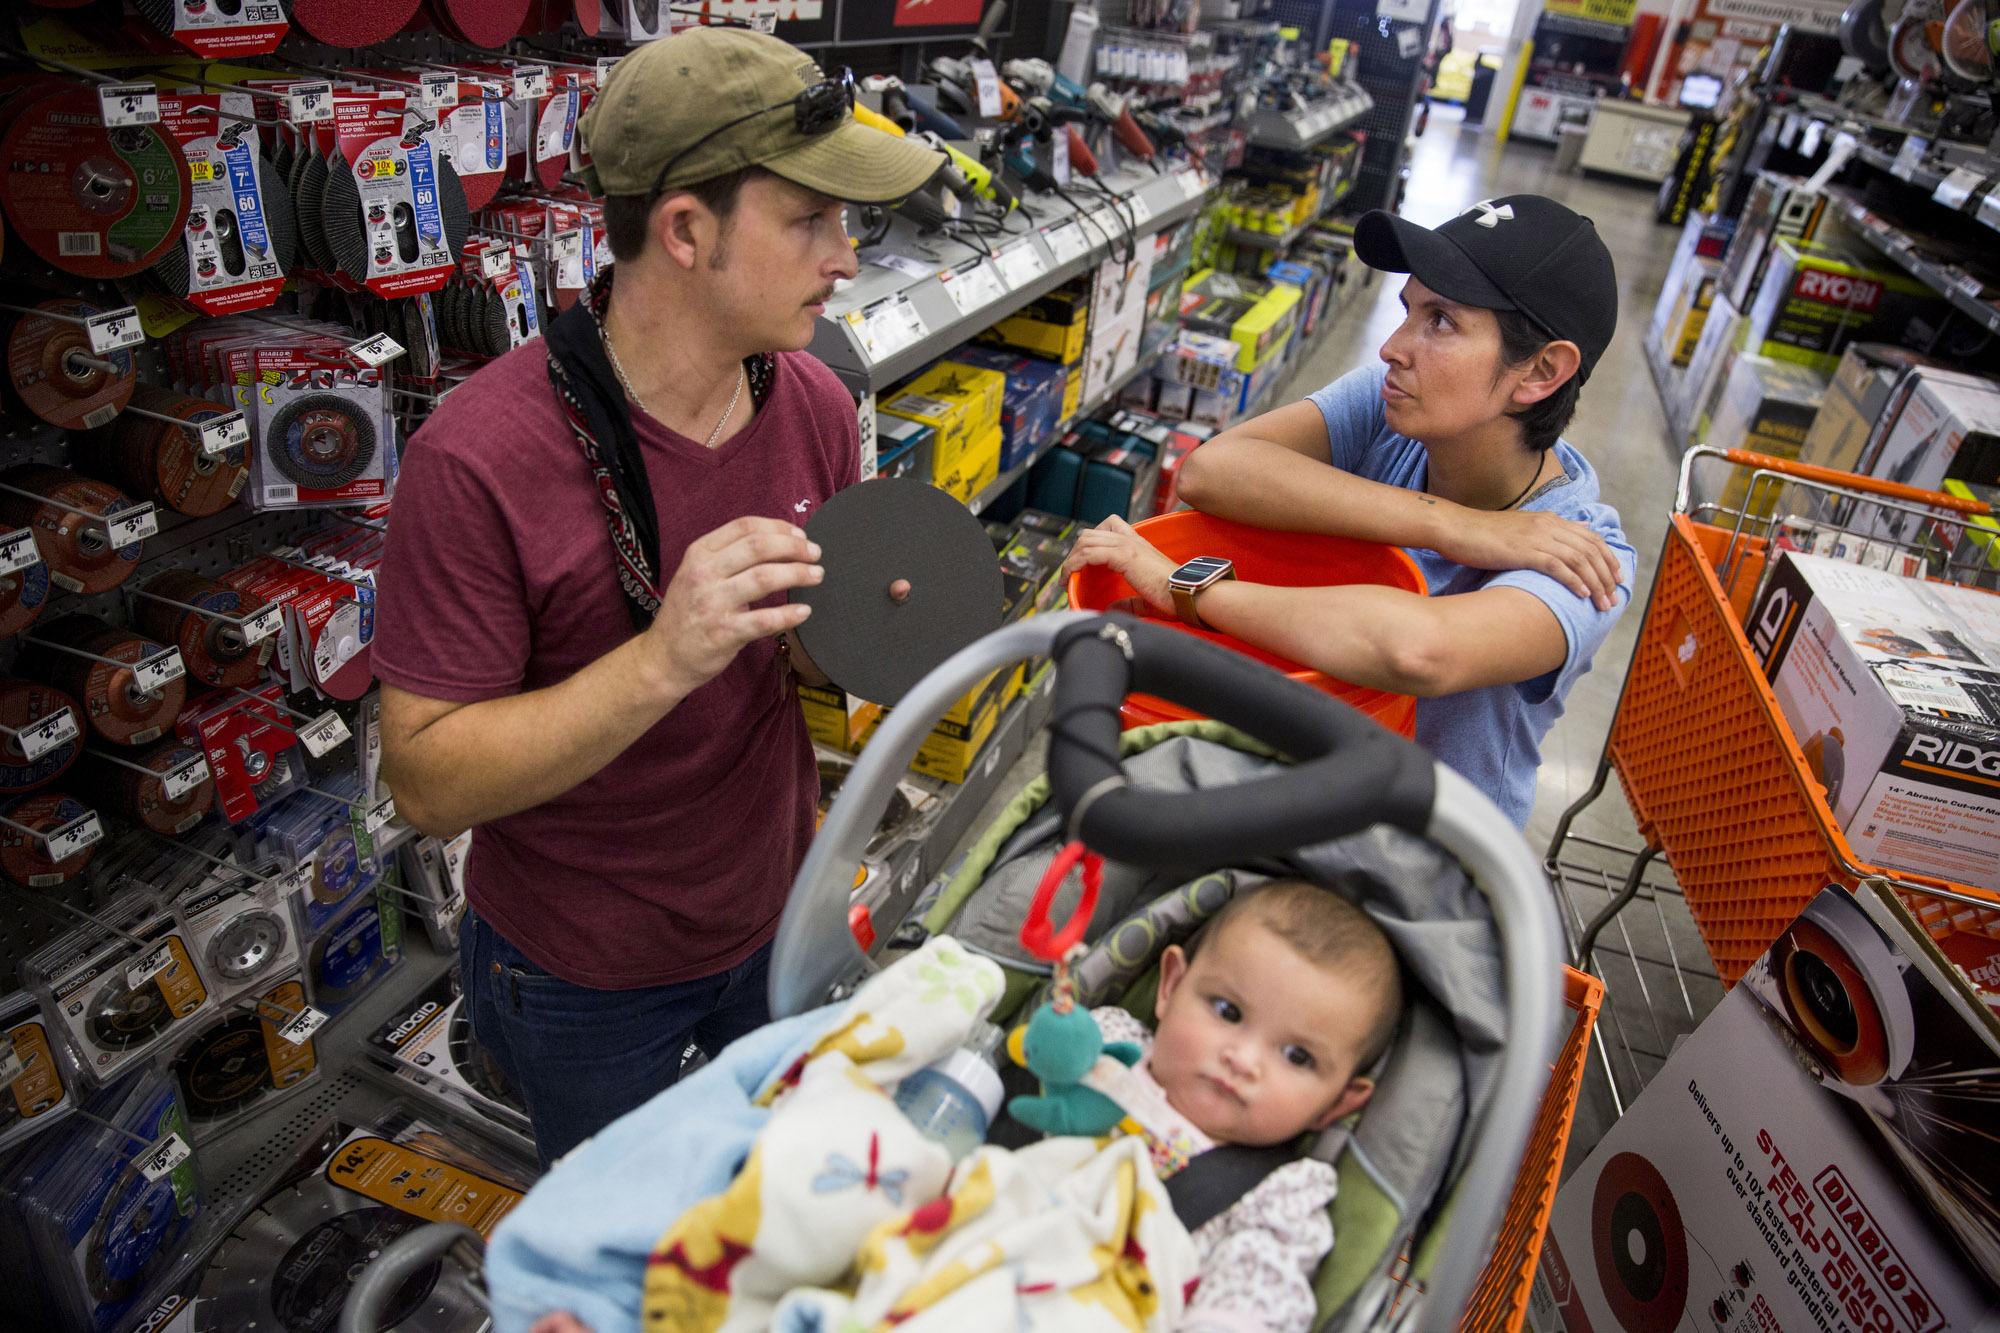 Jarrell Bamberger talks to his wife Glenda Bamberger about what they need to start building their home while their daughter Esmebella, 9 months, sits in their shopping cart at Home Depot in Bulverde, Texas on July 10, 2015.  They began construction on their new home the next day.